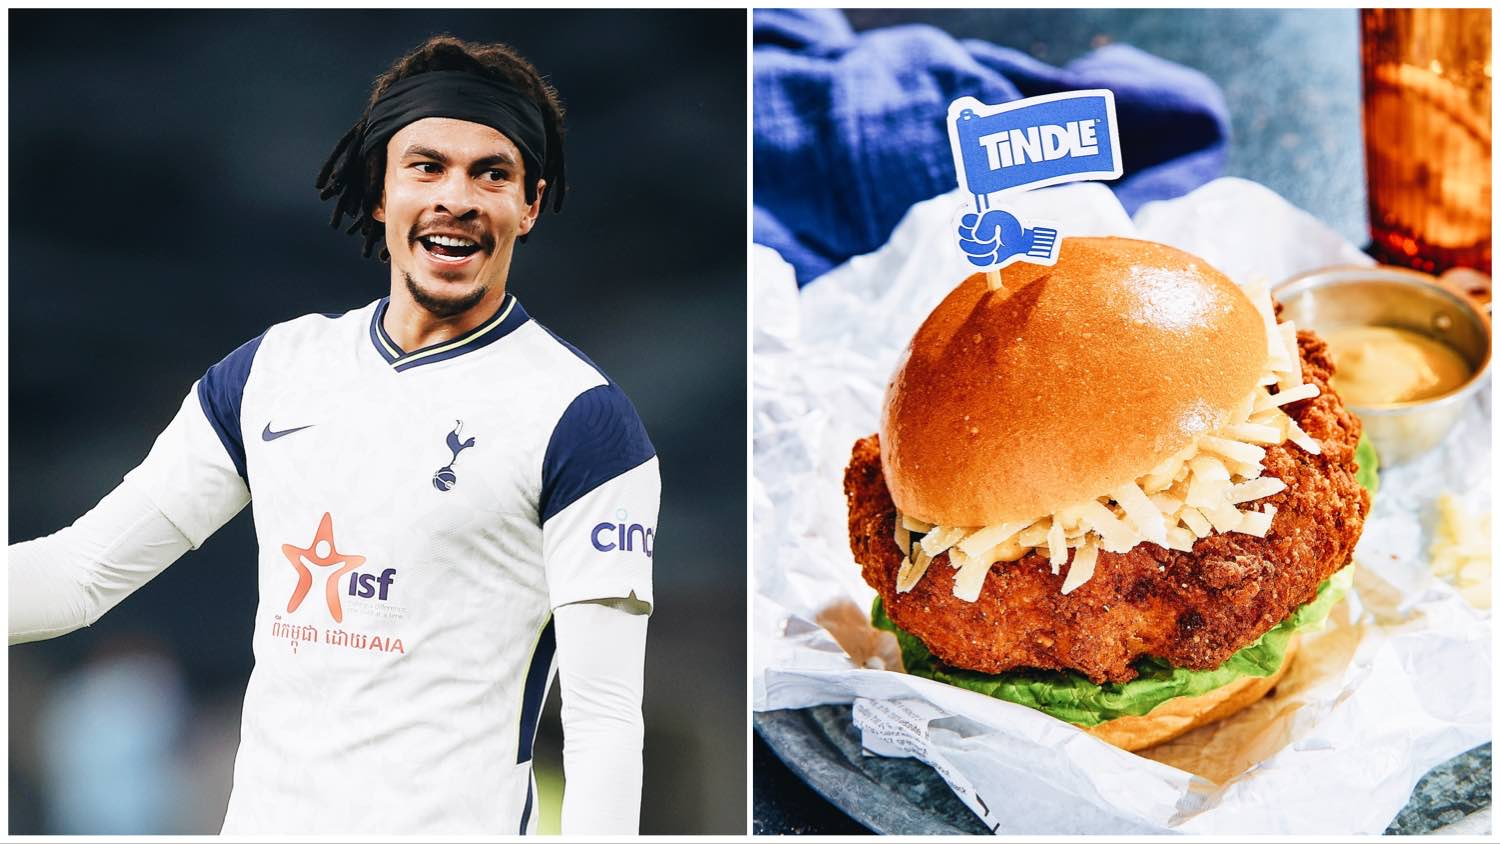 Split image of Dele Alle (left) and a Tindle burger (right), the latest investment by the English footballer.